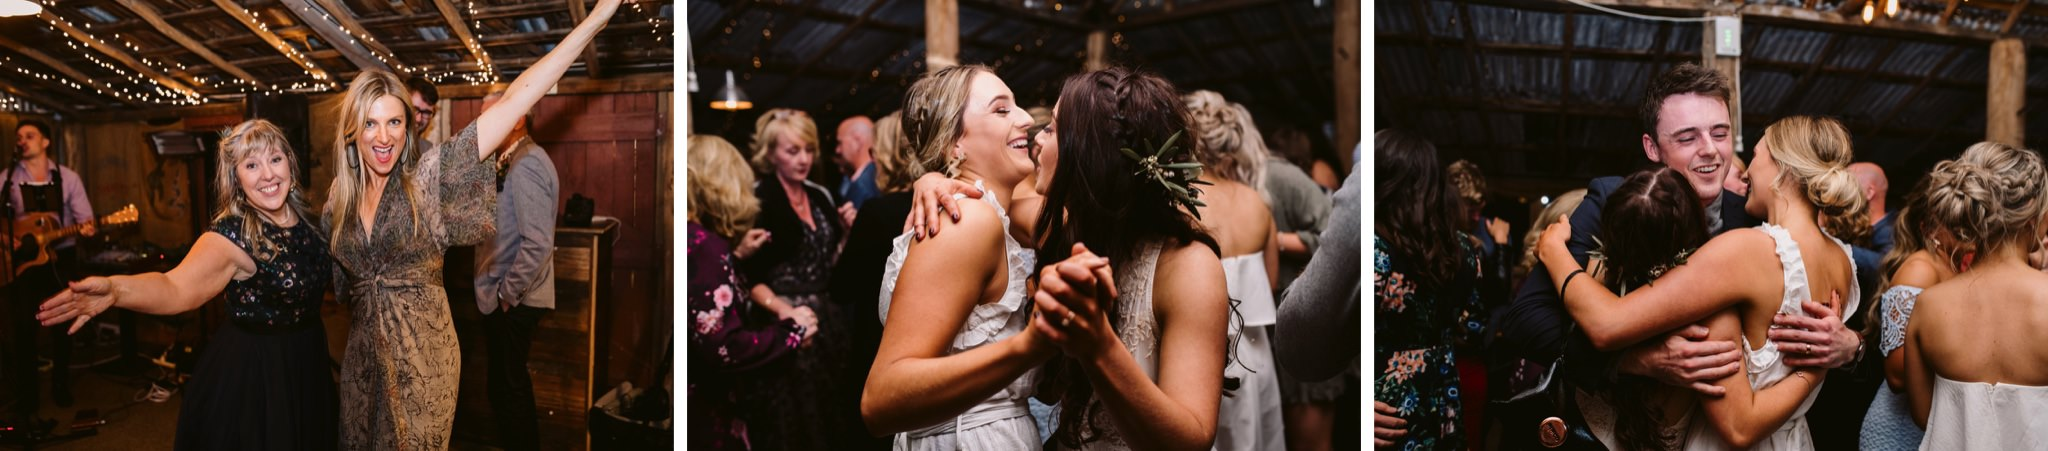 Baxter Barn Wedding Photography Mornington Peninsula116.jpg